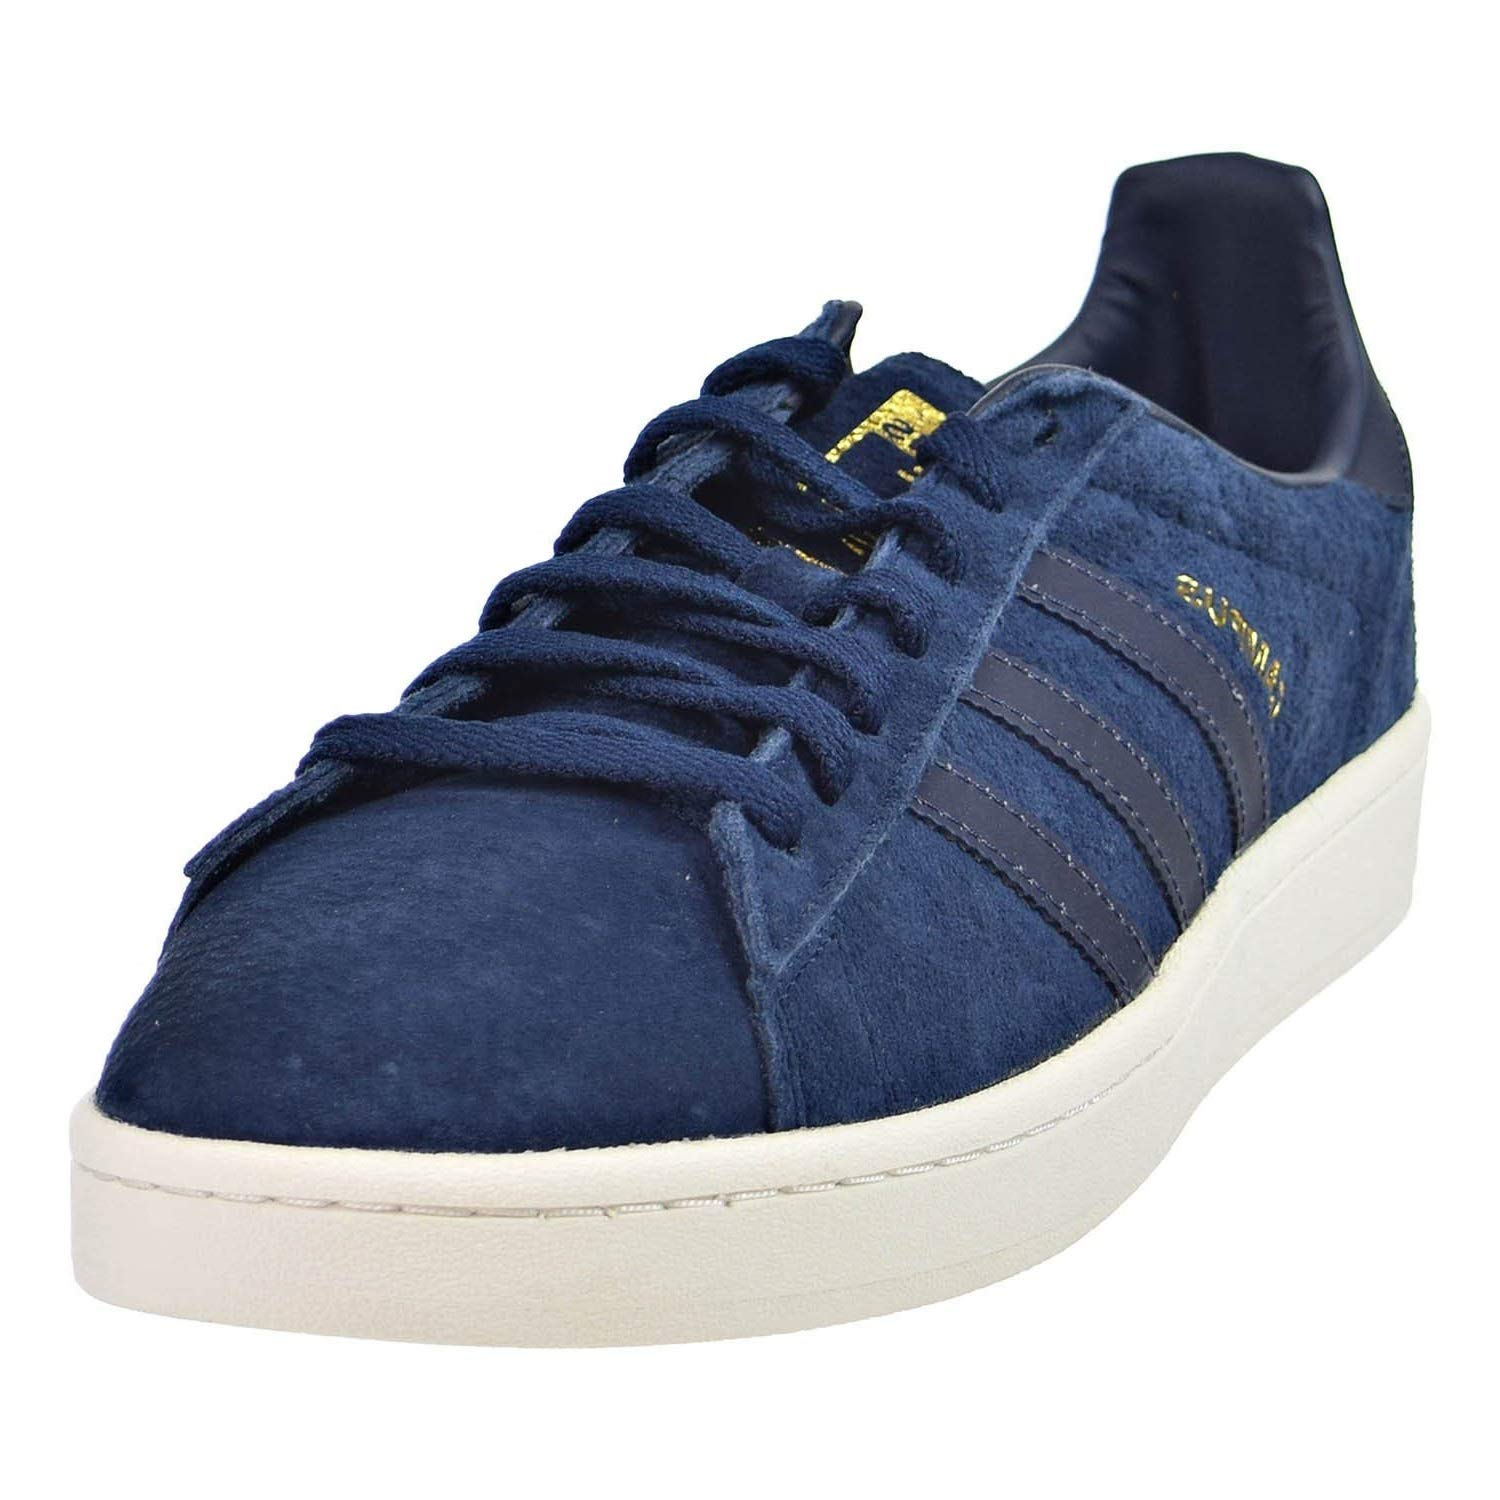 grande vente 1e123 83494 adidas Campus Mens Shoes Collegiate Navy/Reflective/Gold Metallic bz0073  (8.5 M US)